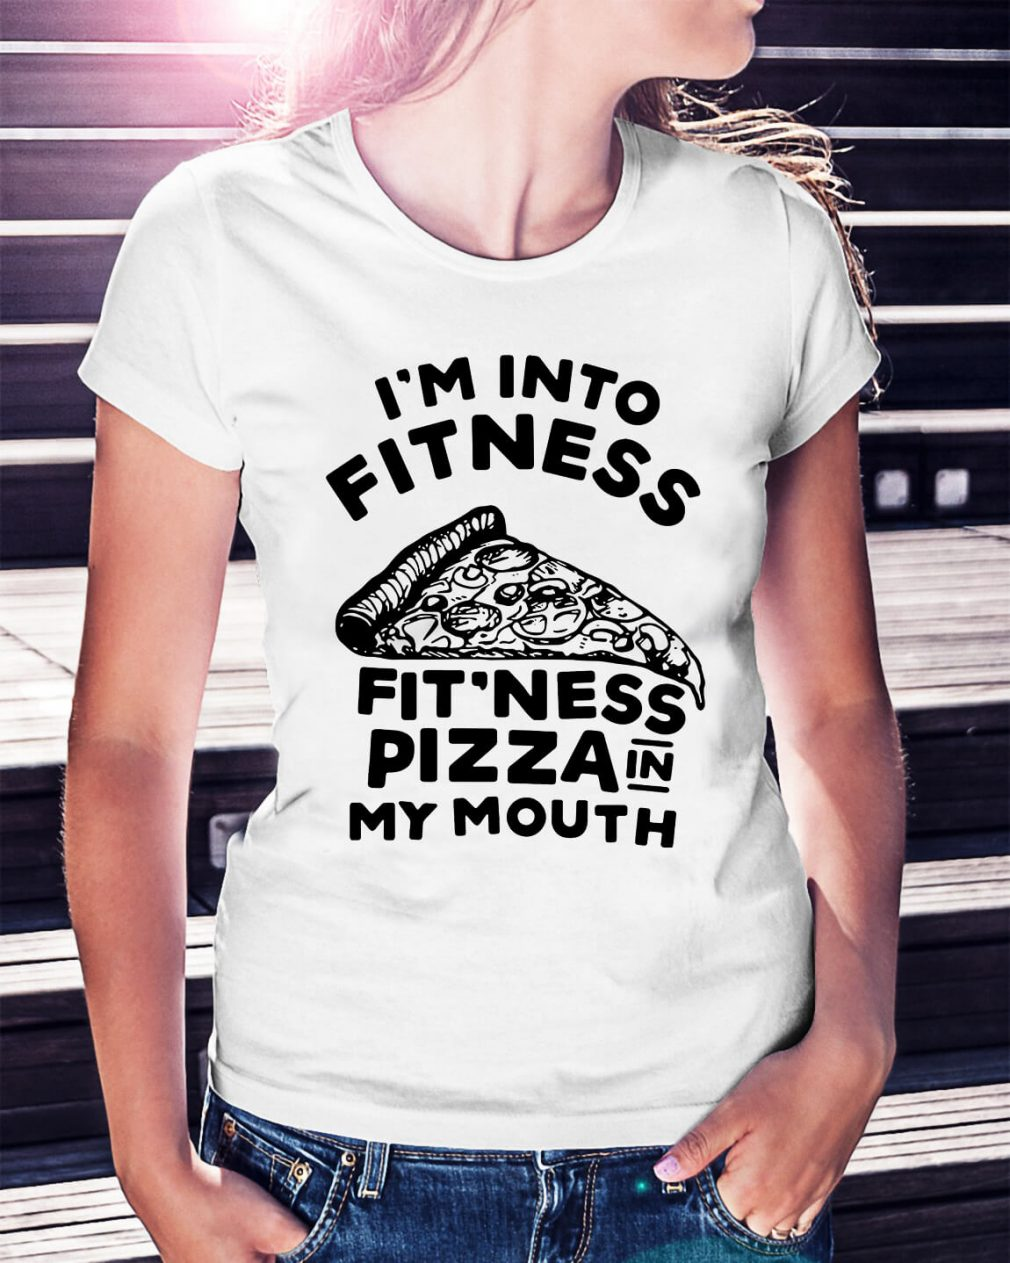 I'm into fitness fit'ness pizza in my mouth Ladies Tee